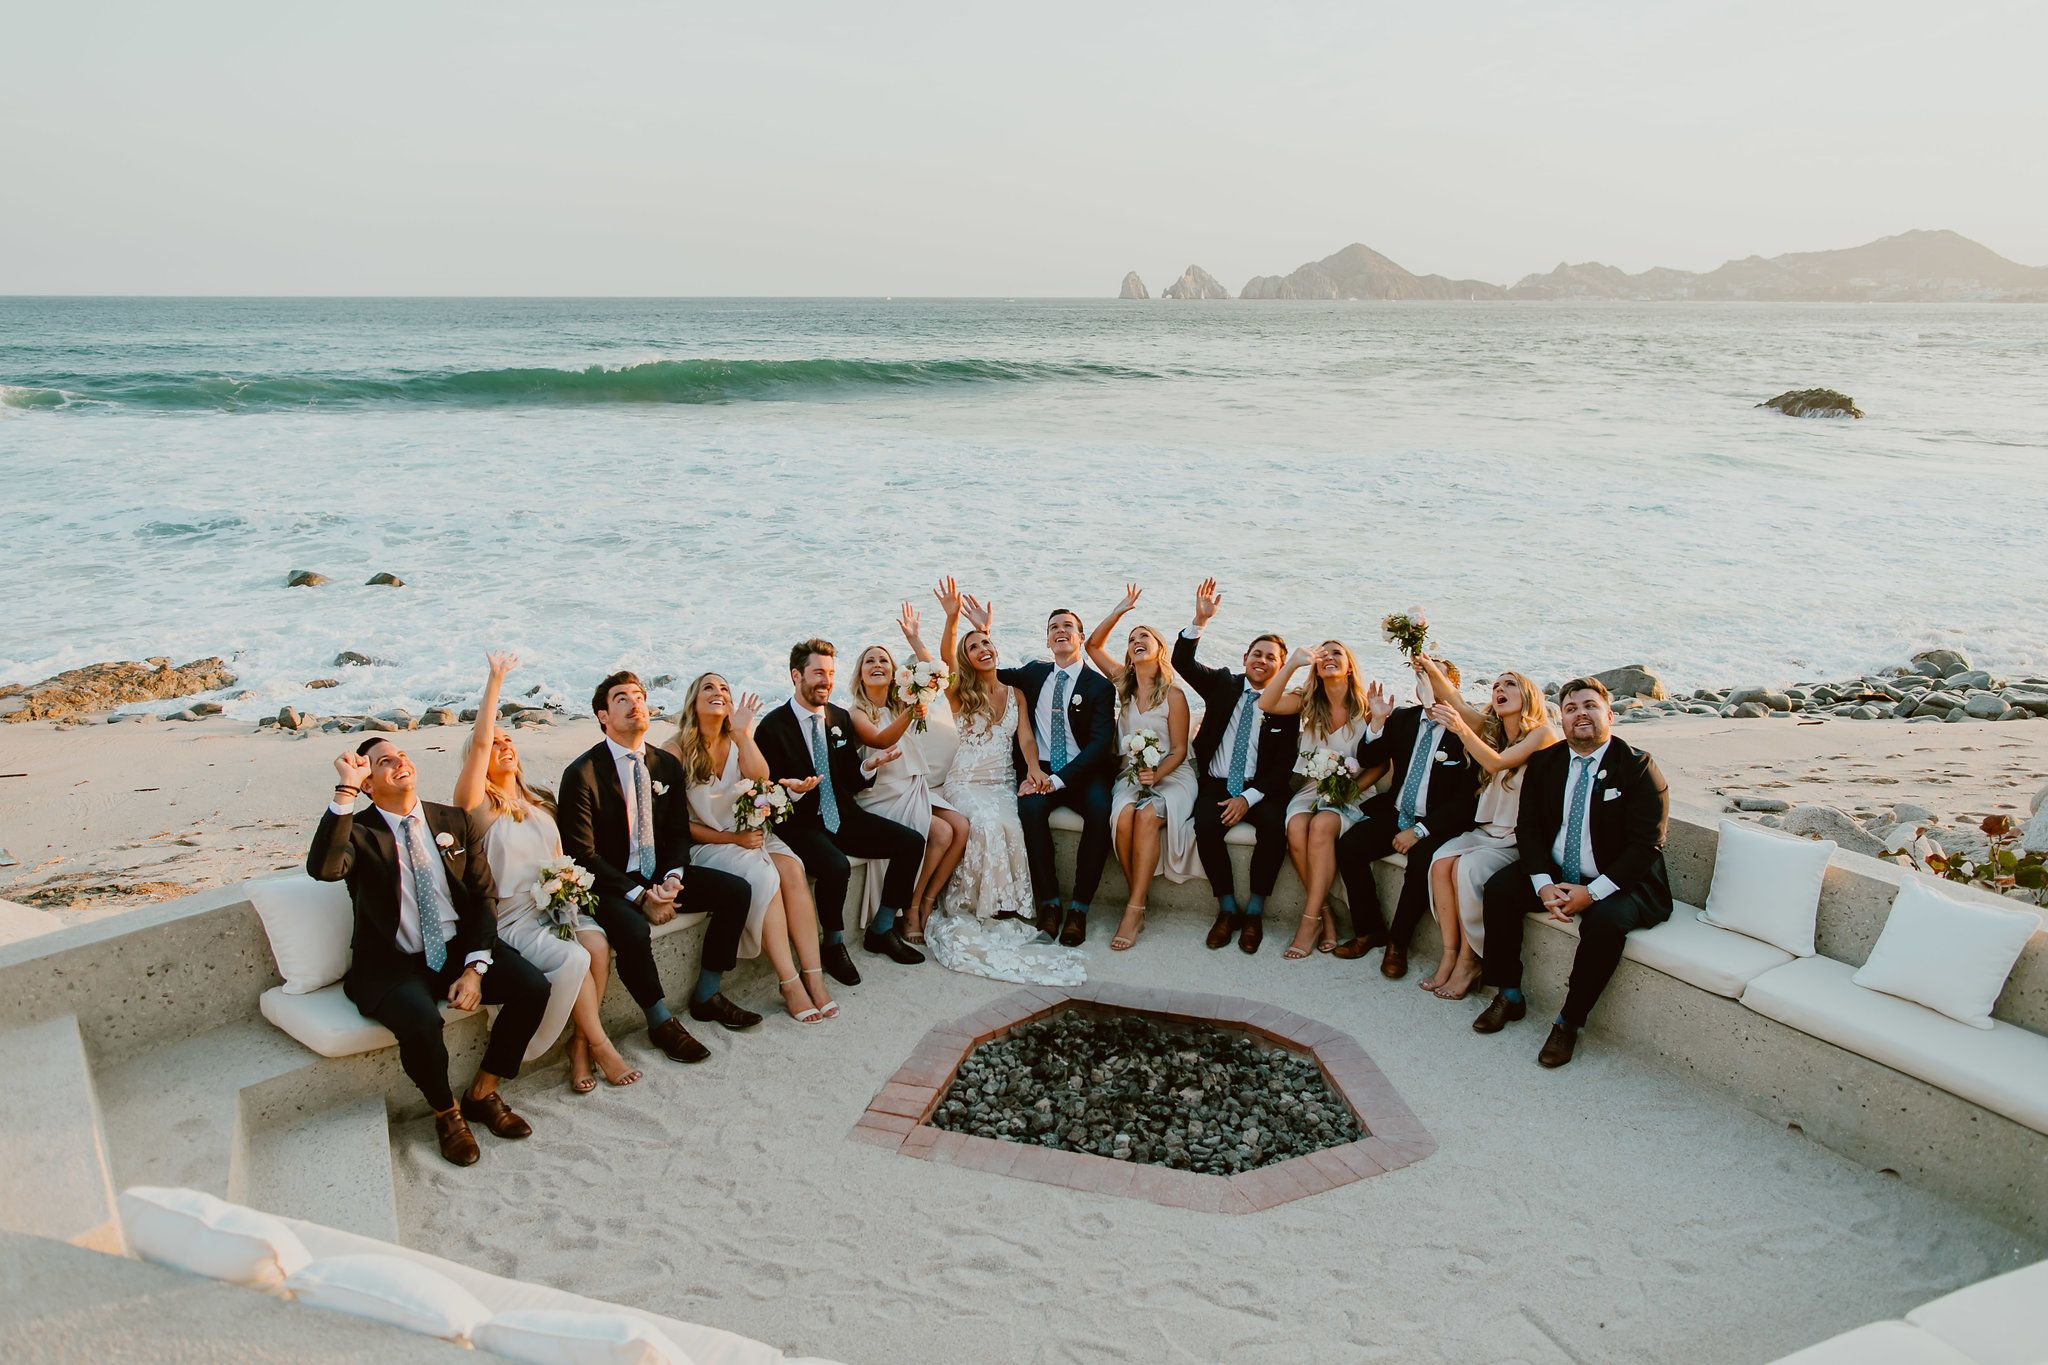 Photo Session with the Bride and Groom at the fire pit on the Beach at The Cape Hotel in Cabo San Lucas Mexico. The famous Arch behind them as well as the Sea of Cortez made everything perfect. The waves also looked amazing.